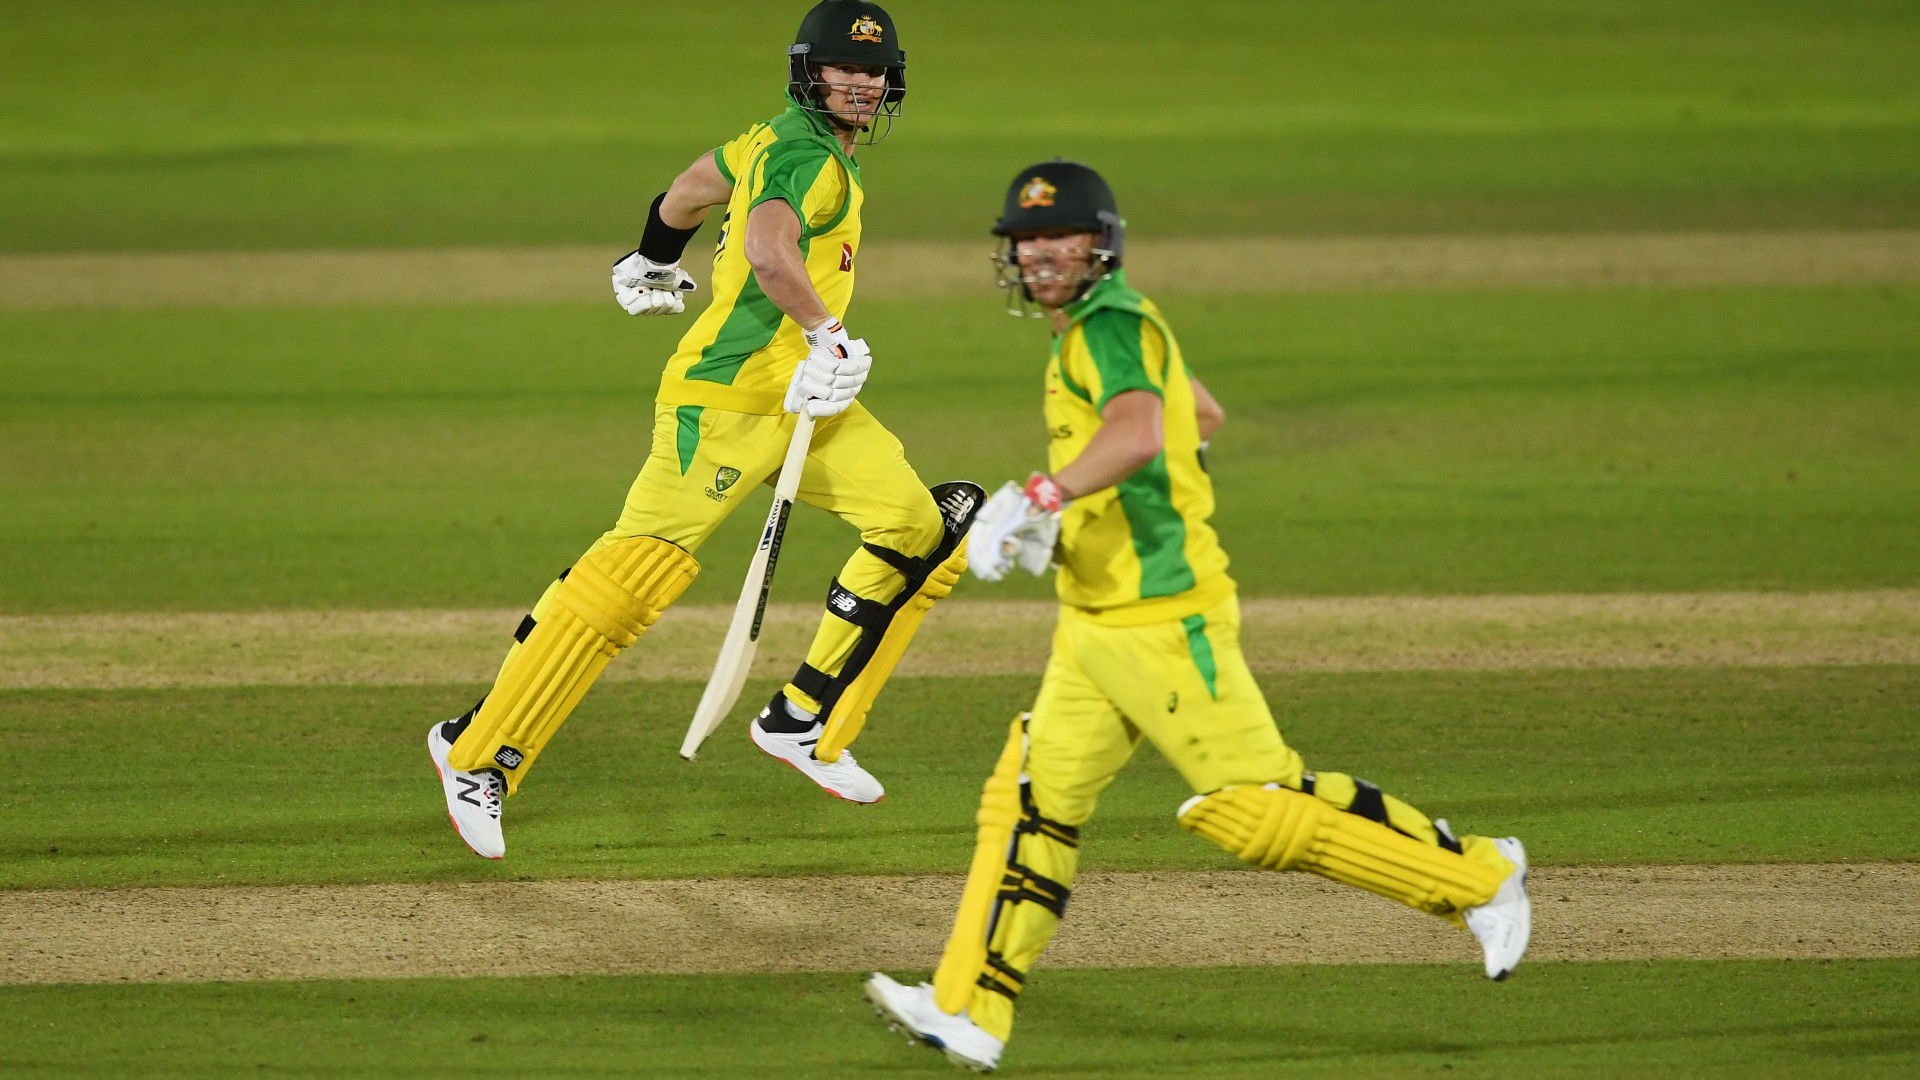 Roles for David Warner and Steve Smith at T20 World Cup revealed